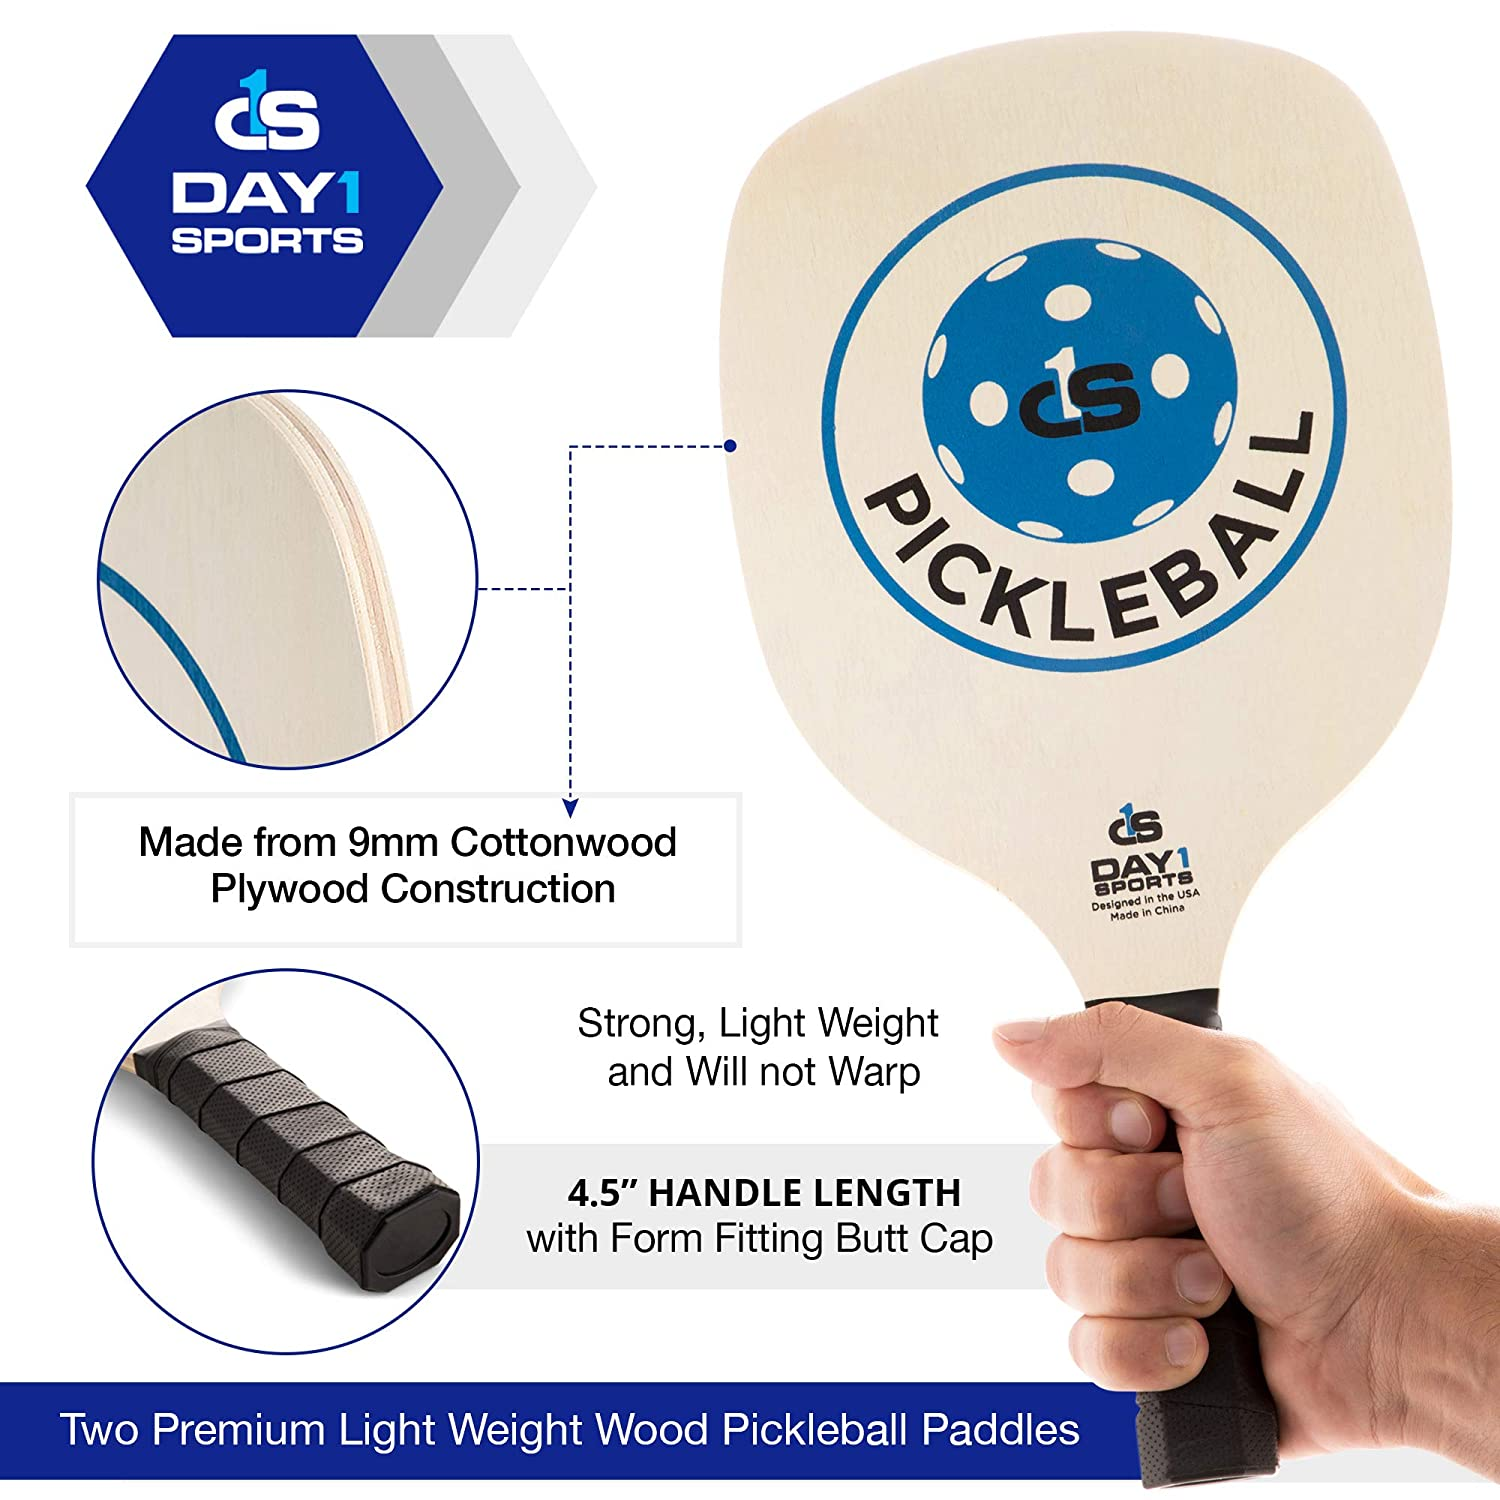 Beginner and Recreational Pickleball Kit with Lightweight Carry Bag 4 Indoor Pickle Balls by Day 1 Sports Pickleball Paddle Starter Set in RED or Blue: 2 Paddles Wooden Rackets and Accessories